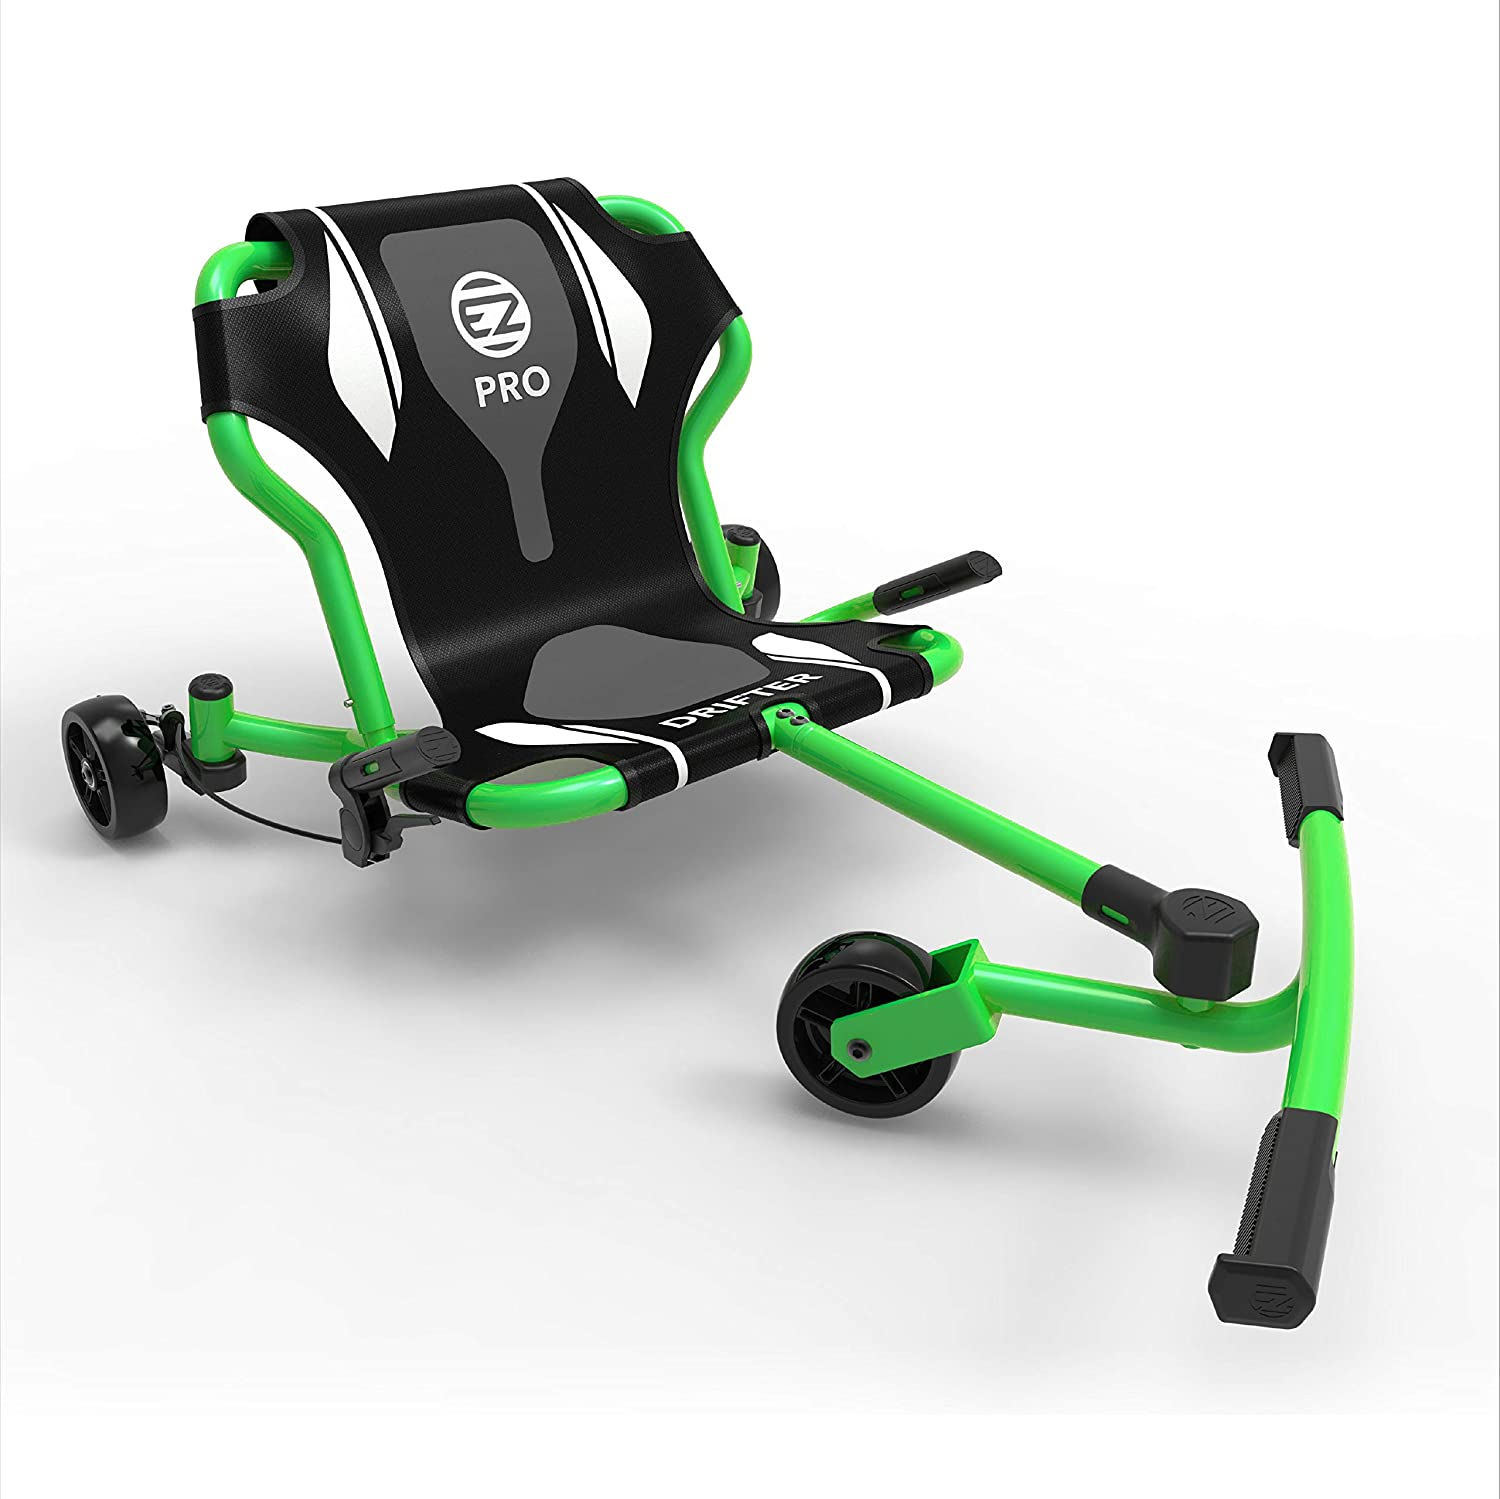 EzyRoller New Drifter Pro-X Ride on Toy for Kids or Adults, Ages 10 and Older Up to 200 lbs.- Green